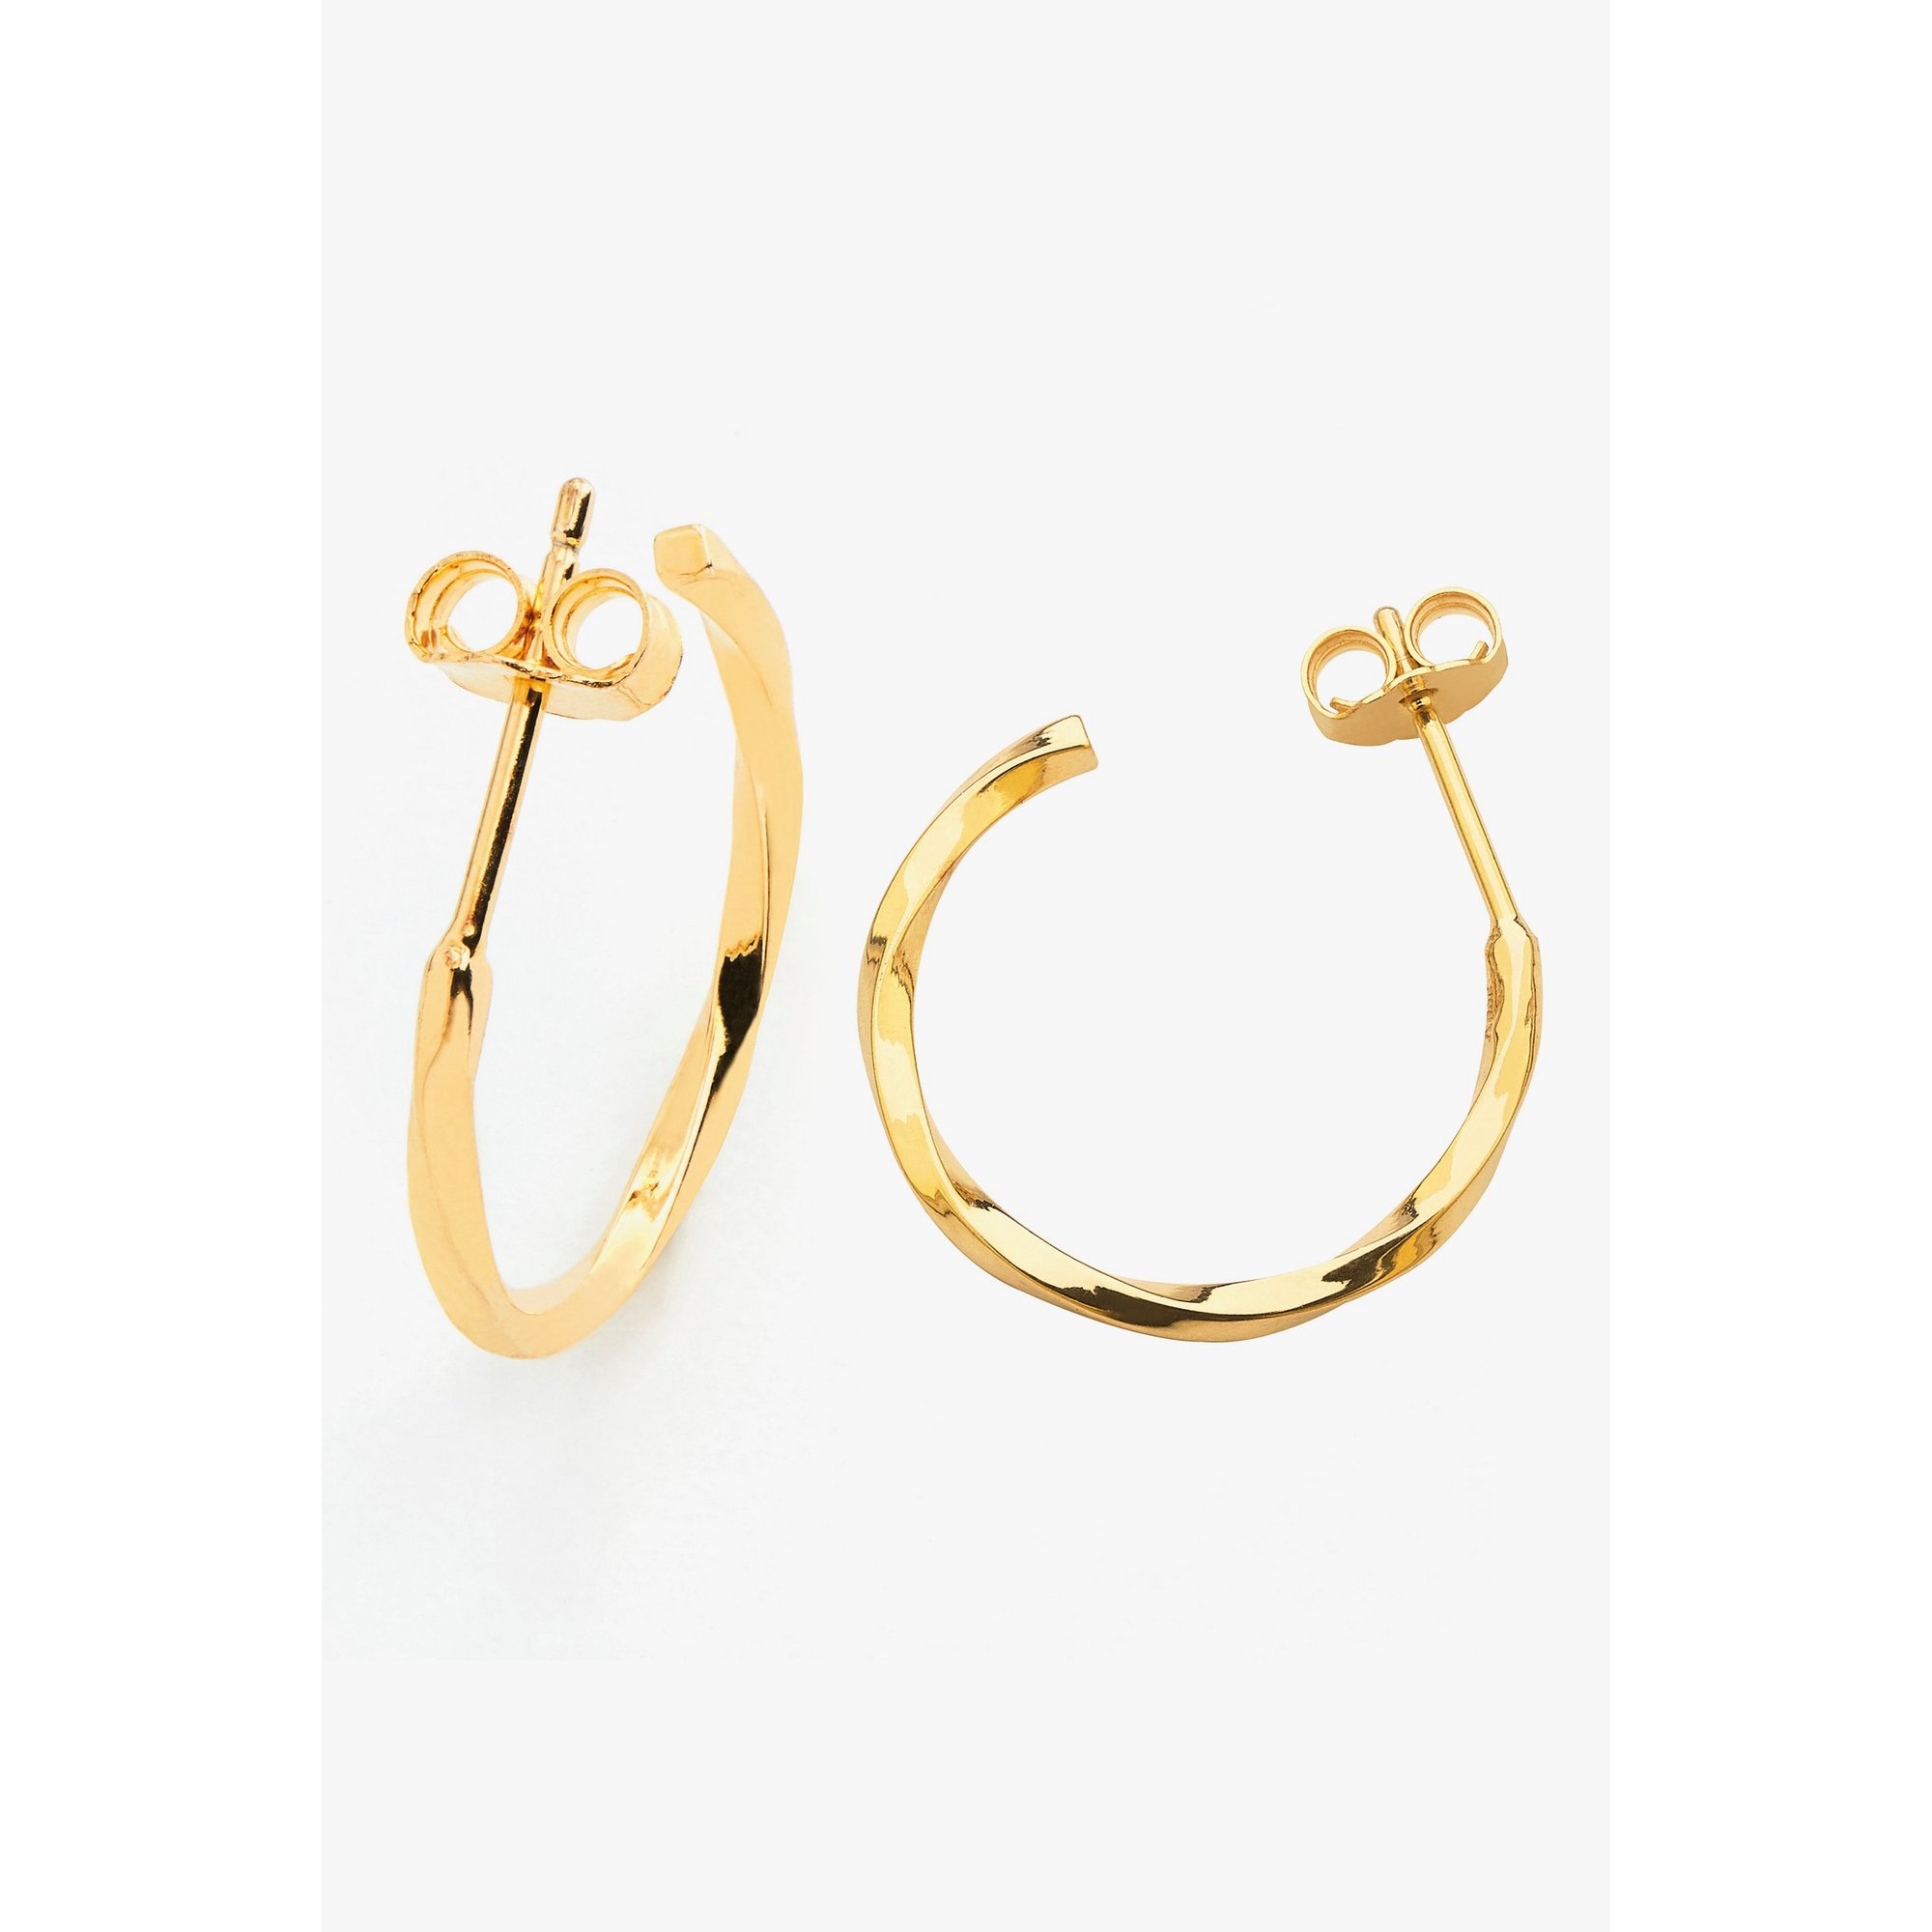 Image of 15mm Gold Plated Post Twisted Hoop Earrings